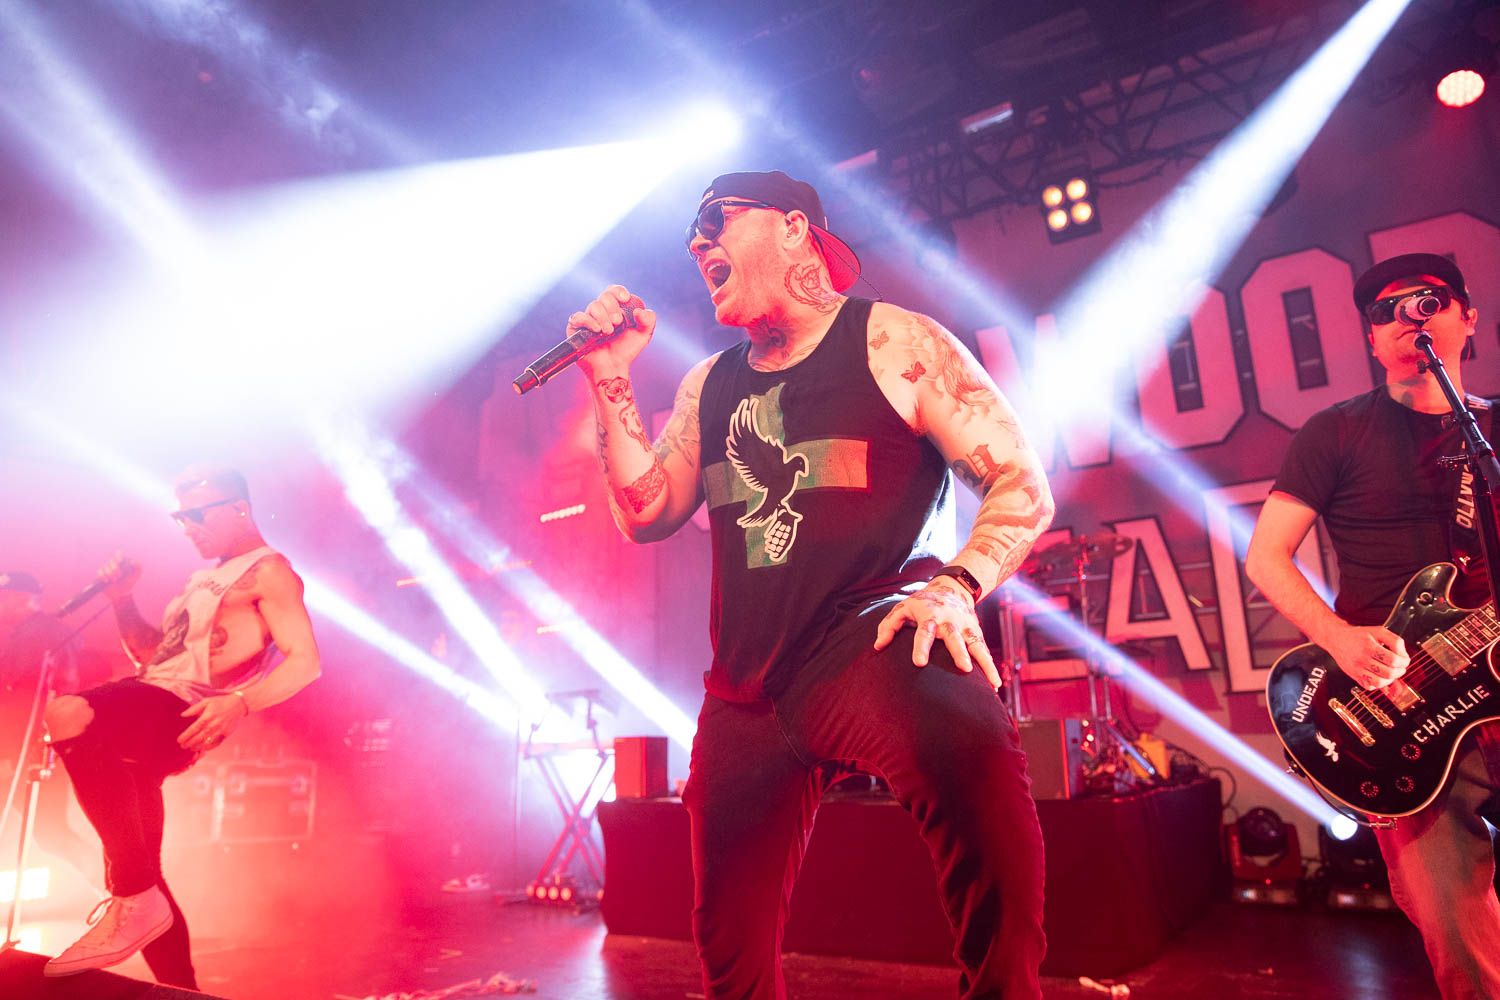 Hollywood Undead at Mountford Hall in Liverpool on April 27th 2019